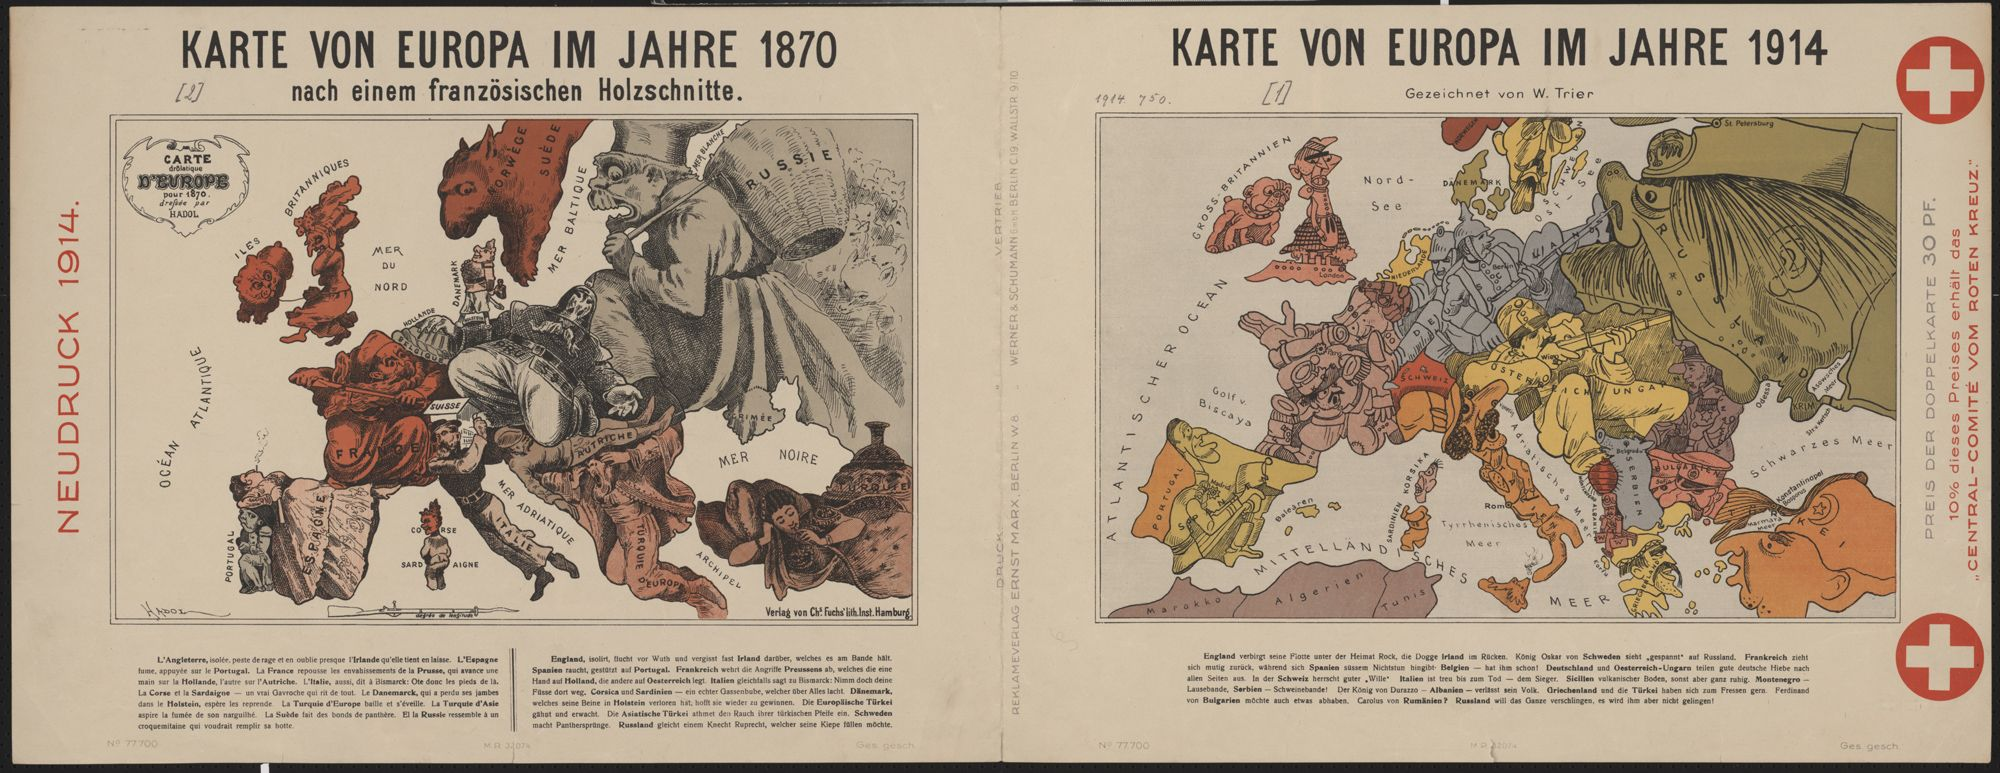 Drawn by German graphic artist Walter Trier this map from 1914